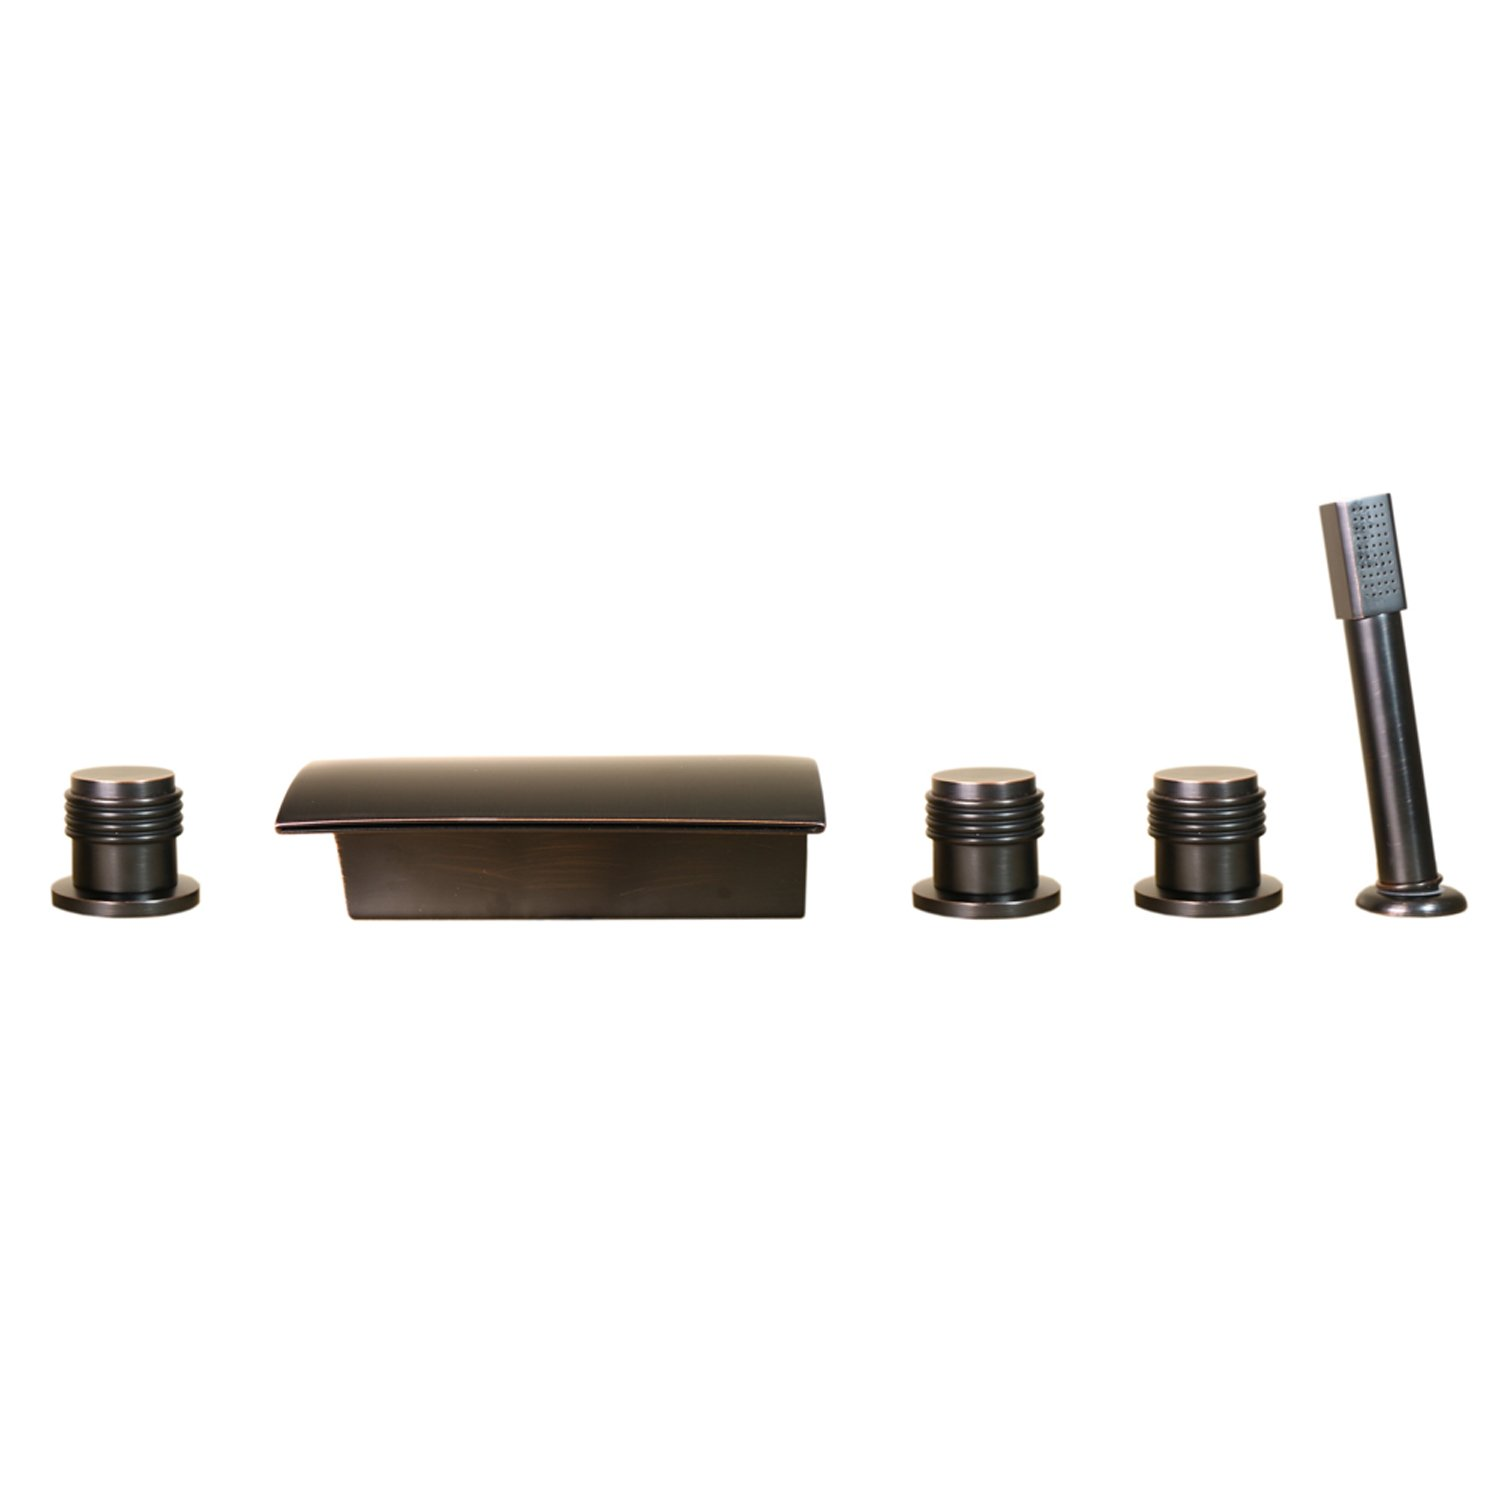 Deck Mount Bathroom sink / tub Faucet with Hand Shower in oil rubbed bronze